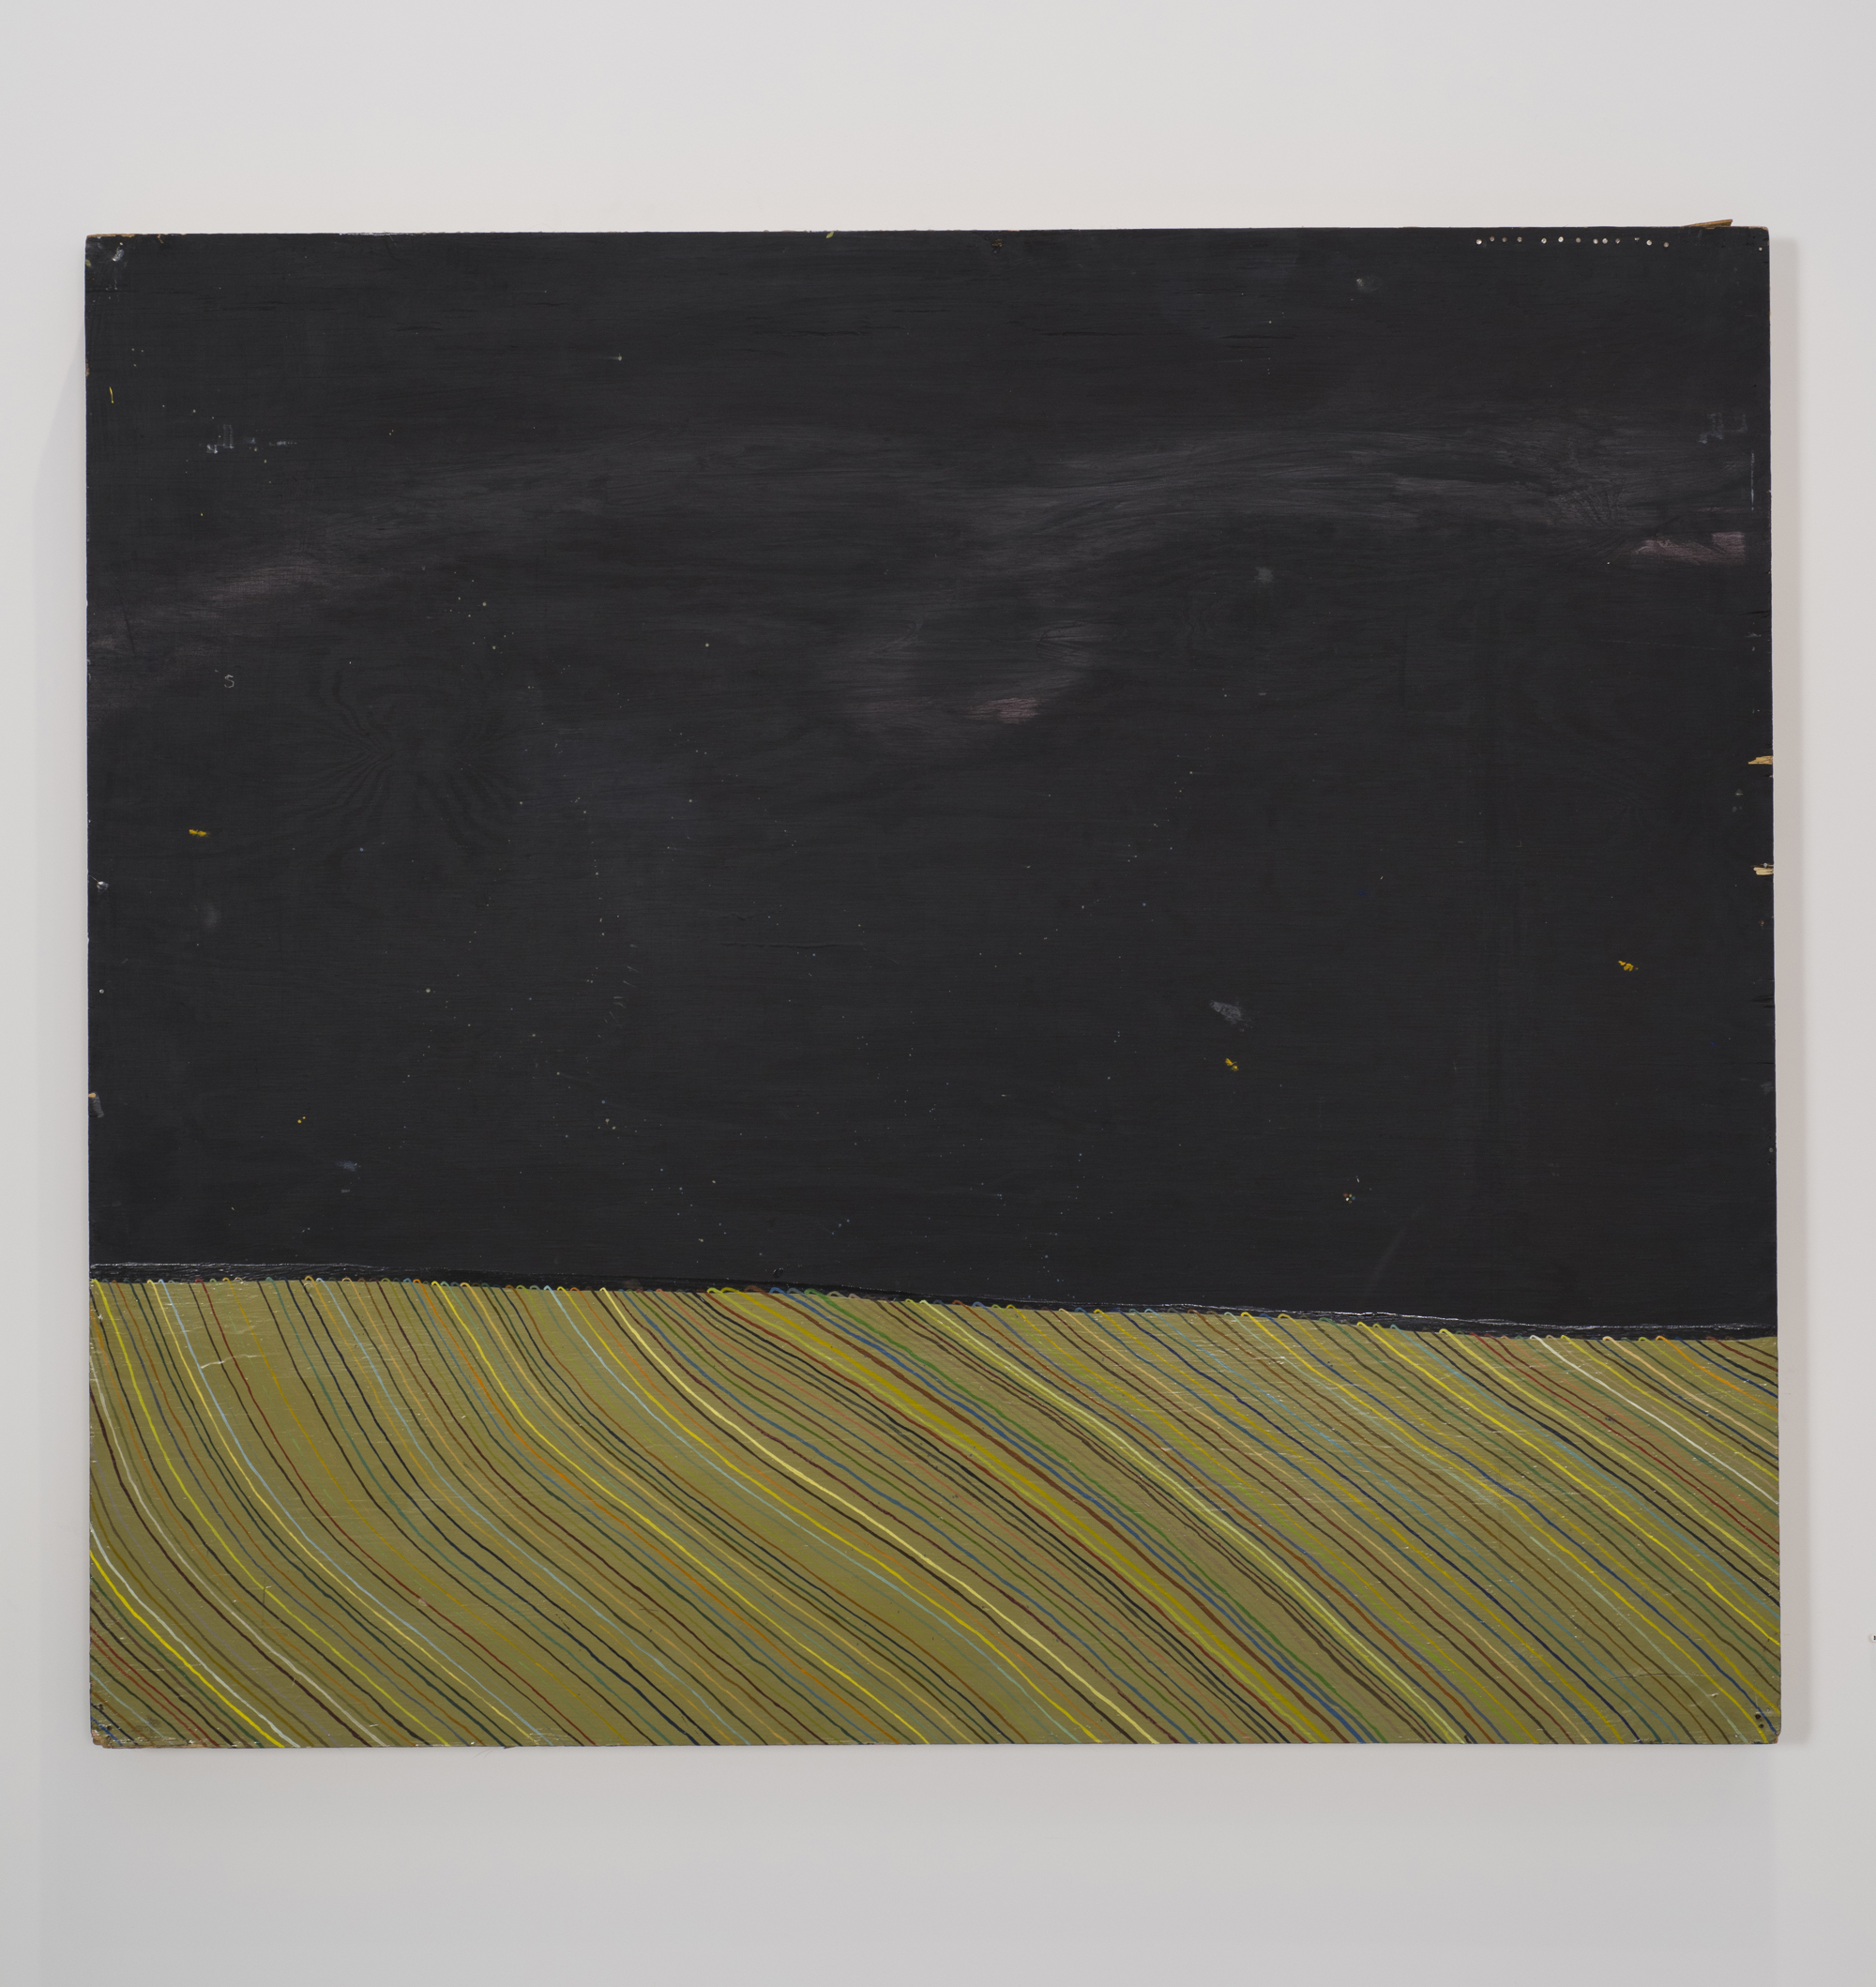 Alicia McCarthy, Untitled, 2001, house paint and gouache on found wood, 48 x 53 1/2 x 1 1/2 inches